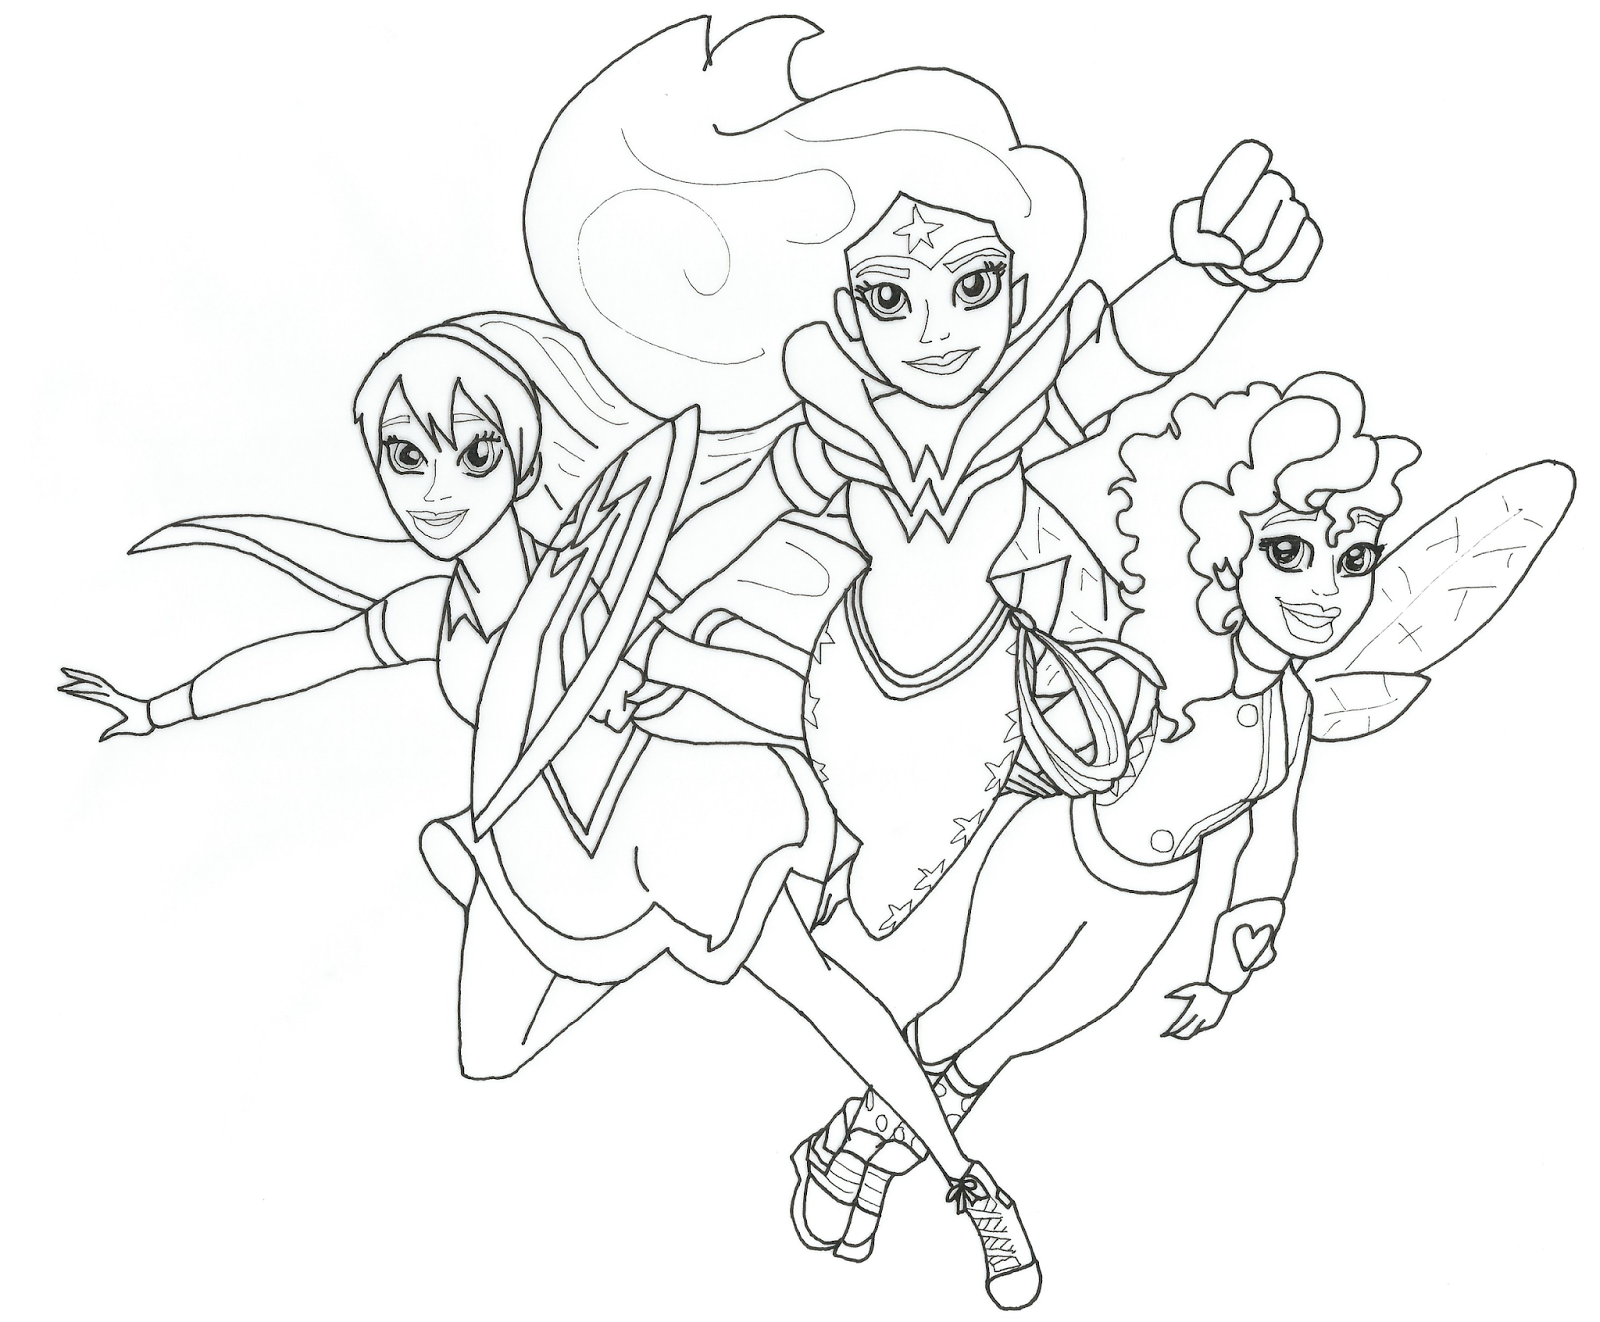 dc super hero girls free printable coloring page - Superhero Coloring Books